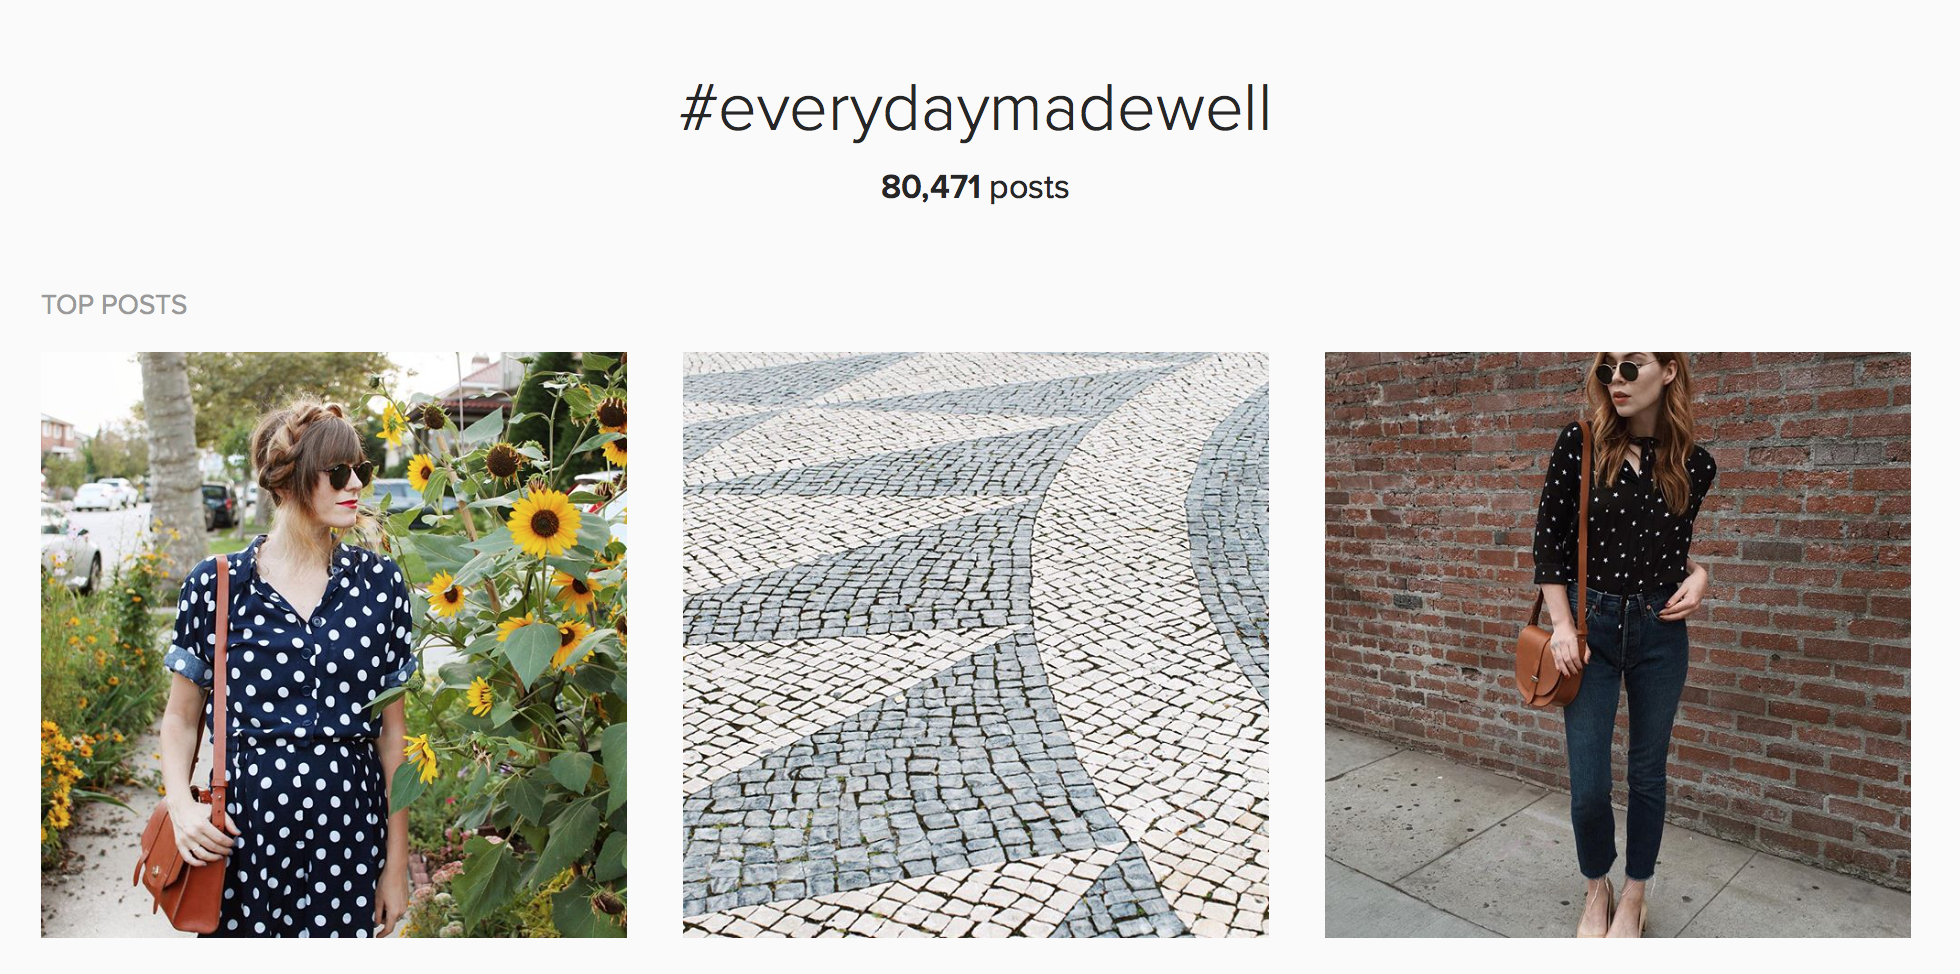 more than 80000 posts in one hashtag